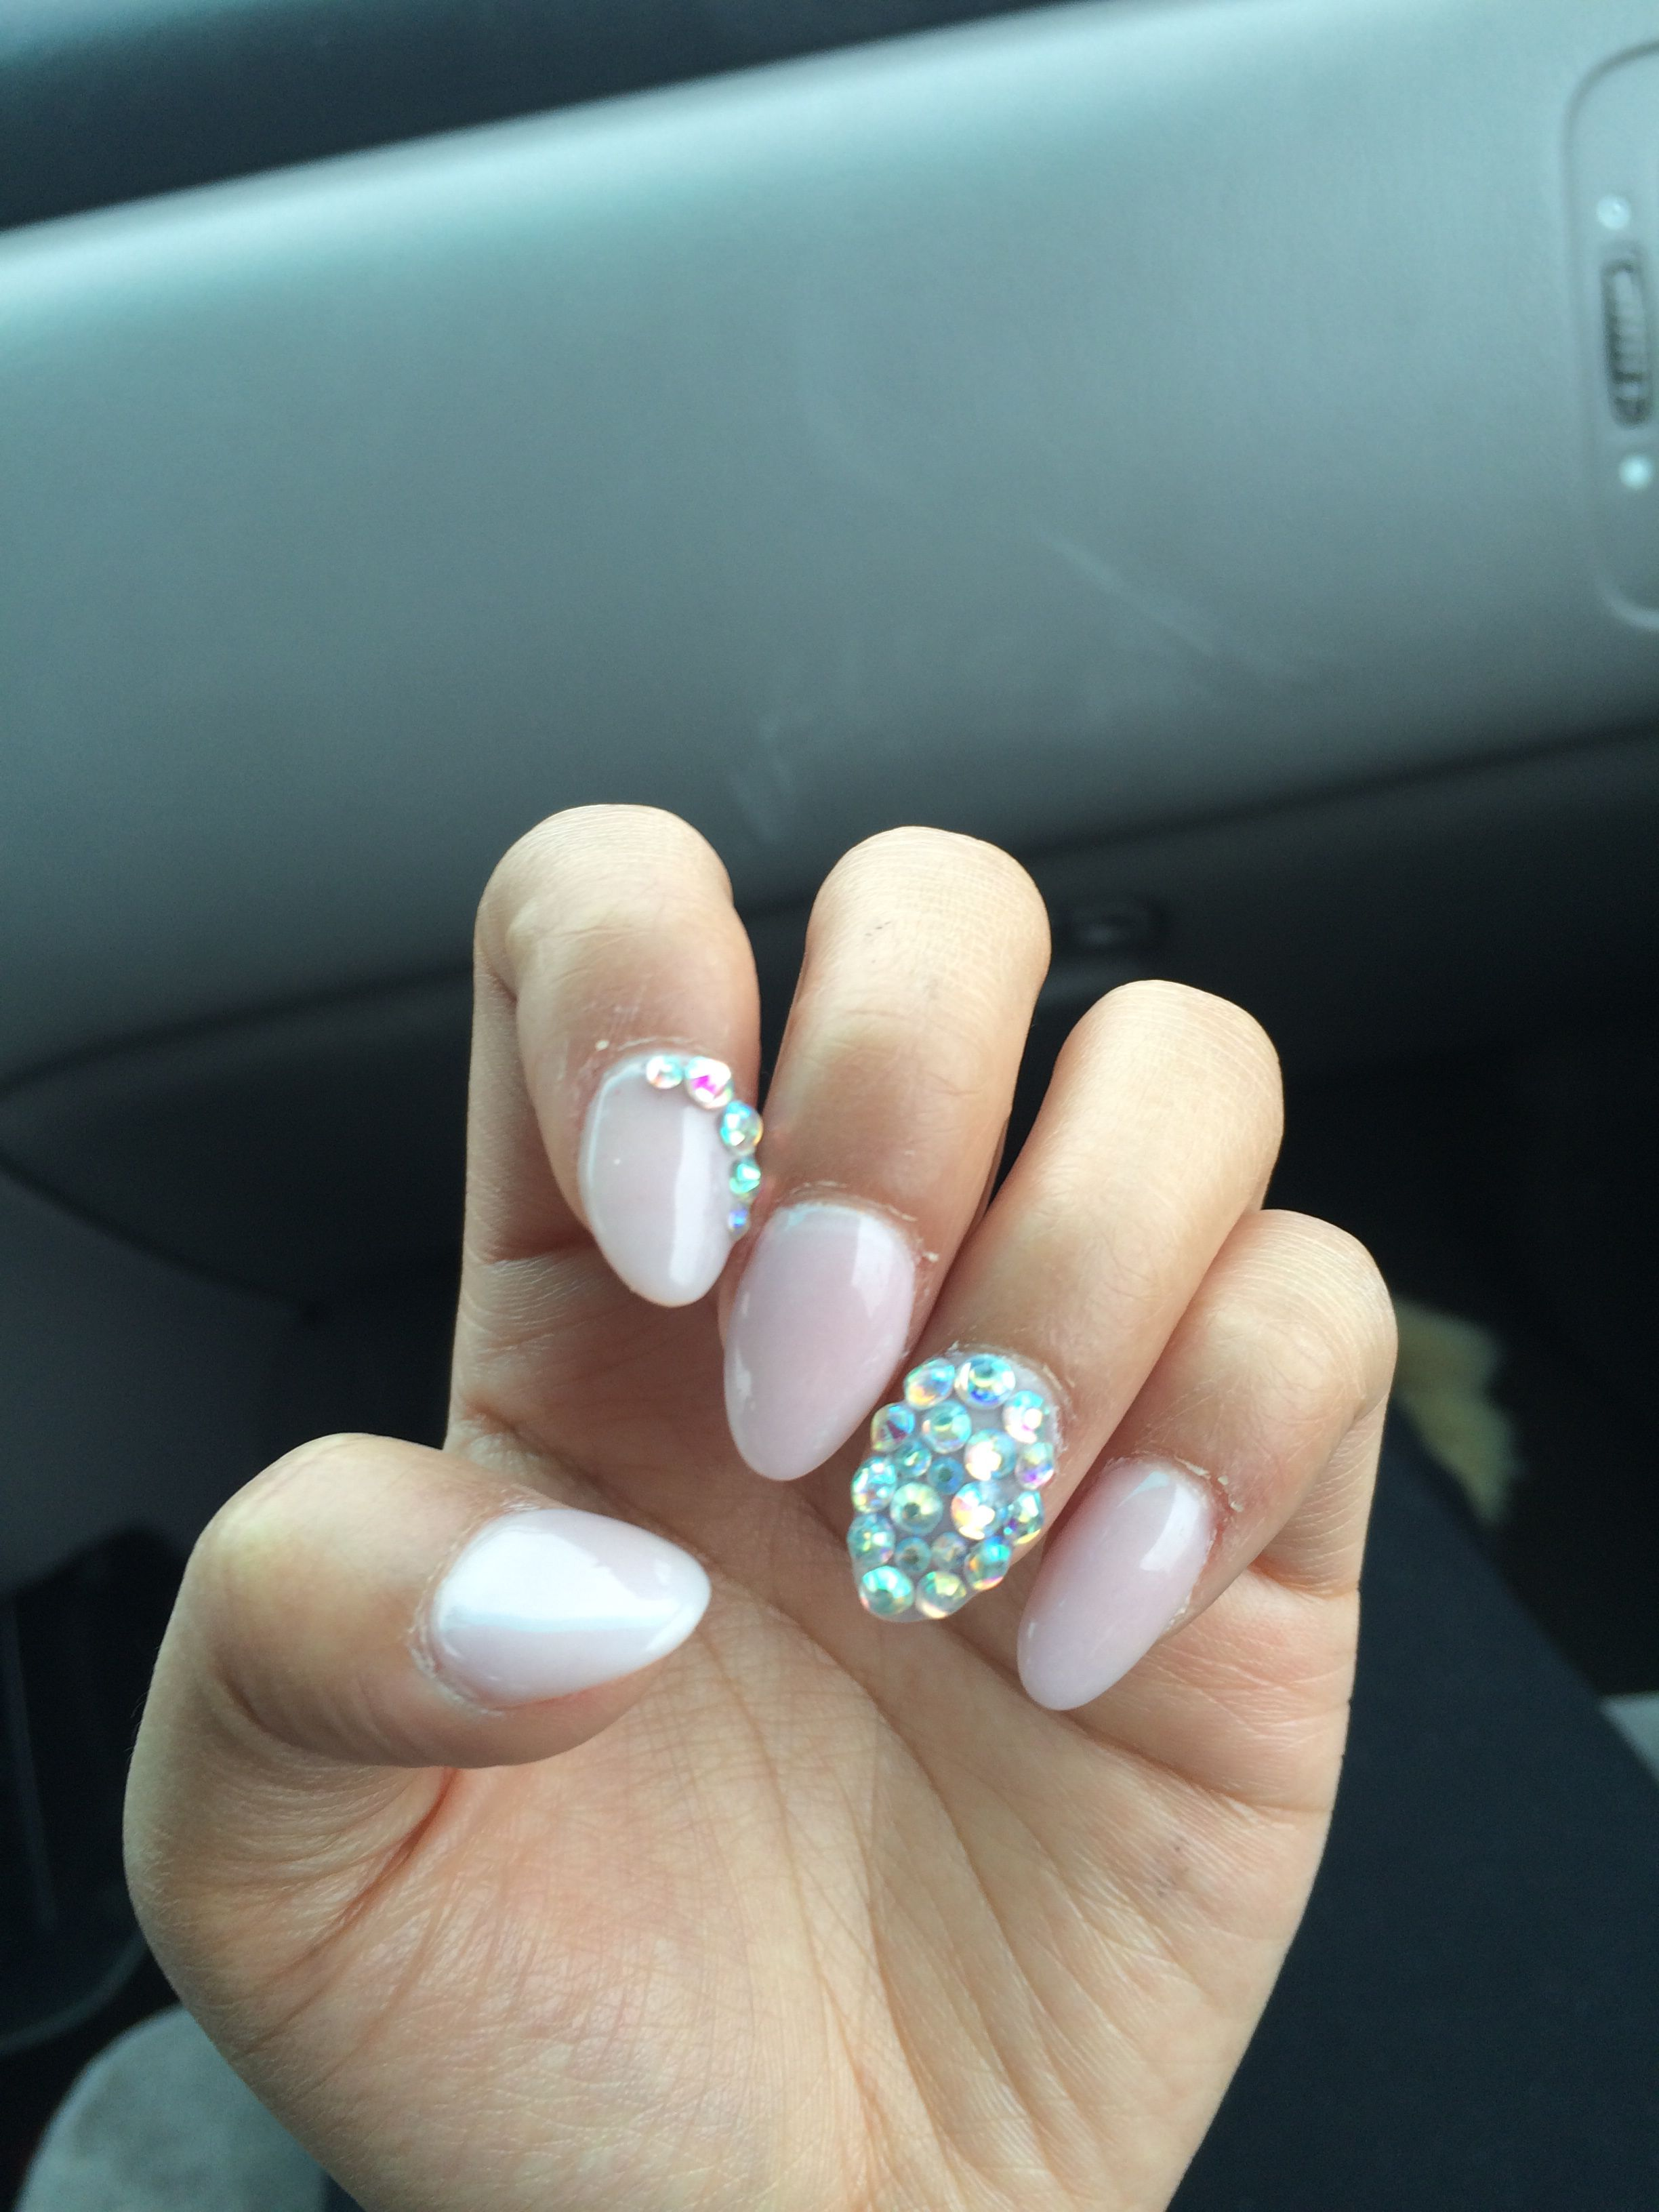 Nude Solar Nails With Gem Designs Nails Pinterest Solar And